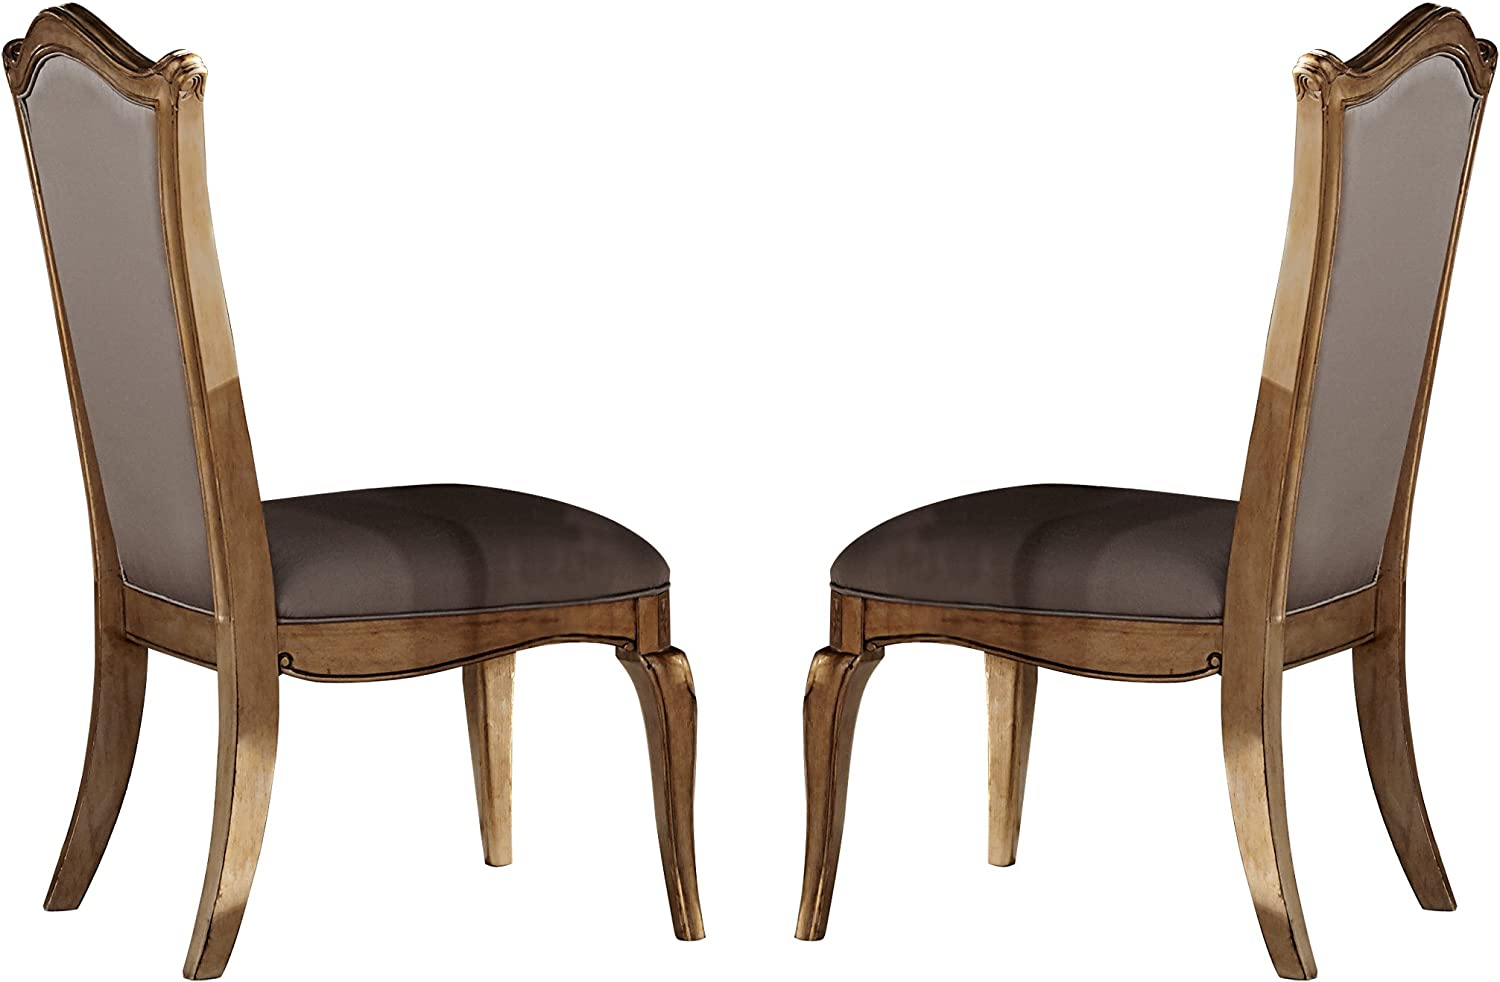 Amazon Com Homelegance Chambord Dining Chair Set Of 2 Antique Gold Chairs